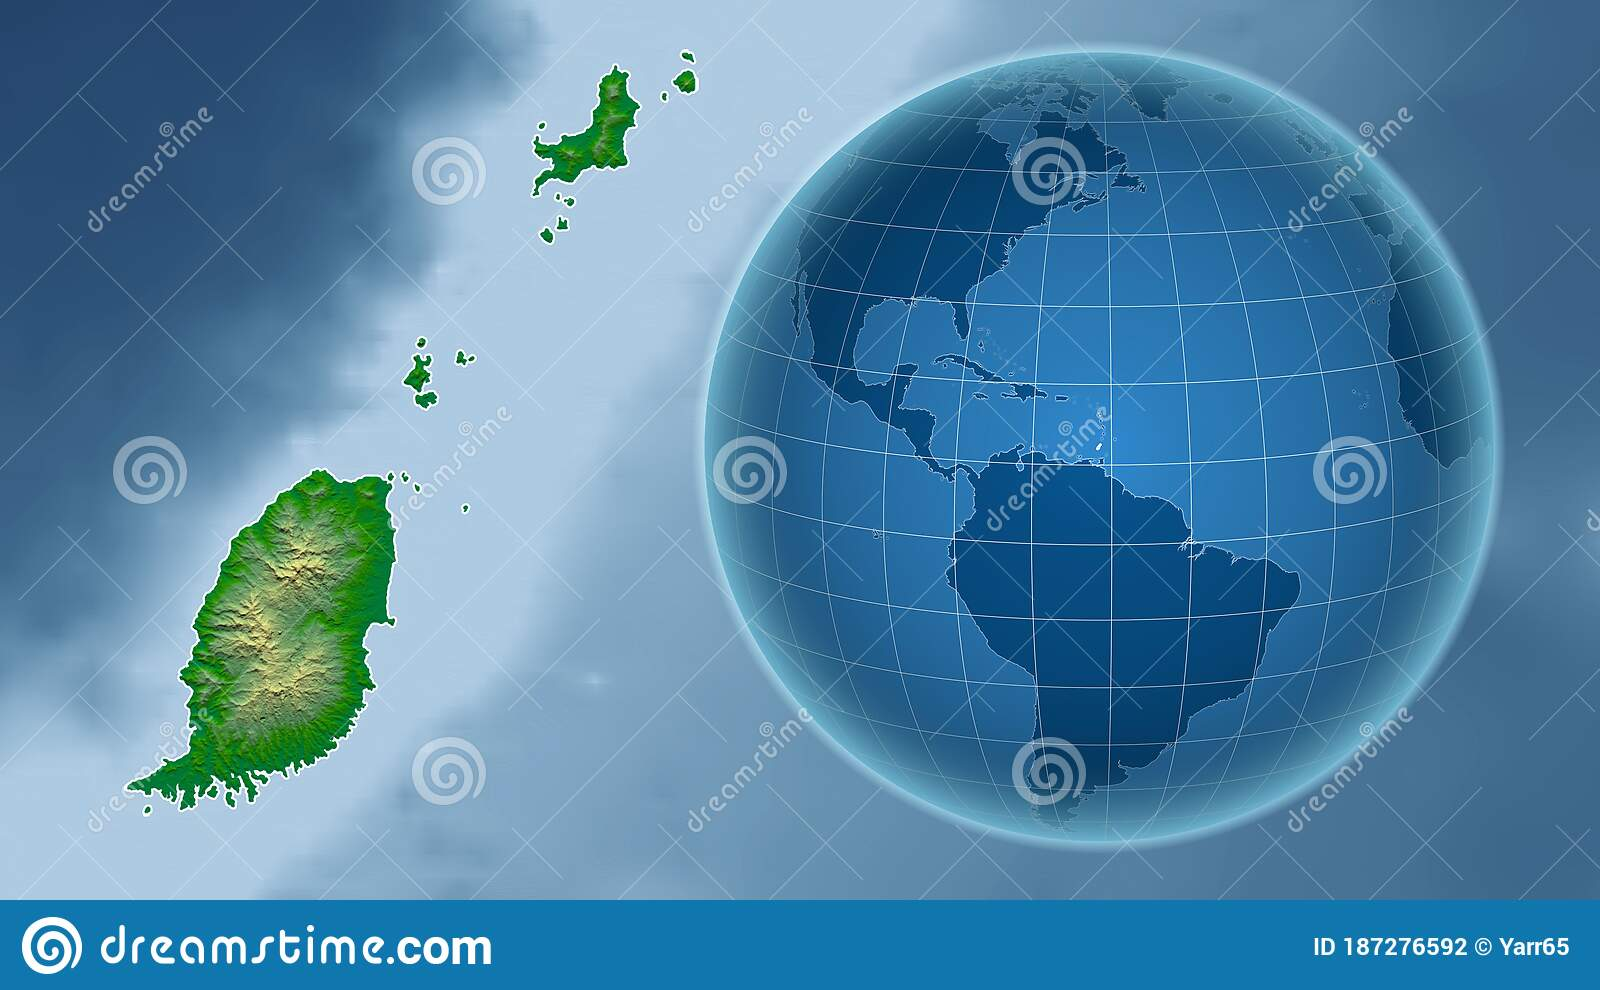 Picture of: Grenada Physical Country And Globe Composition Stock Illustration Illustration Of Cartographic Aster 187276592